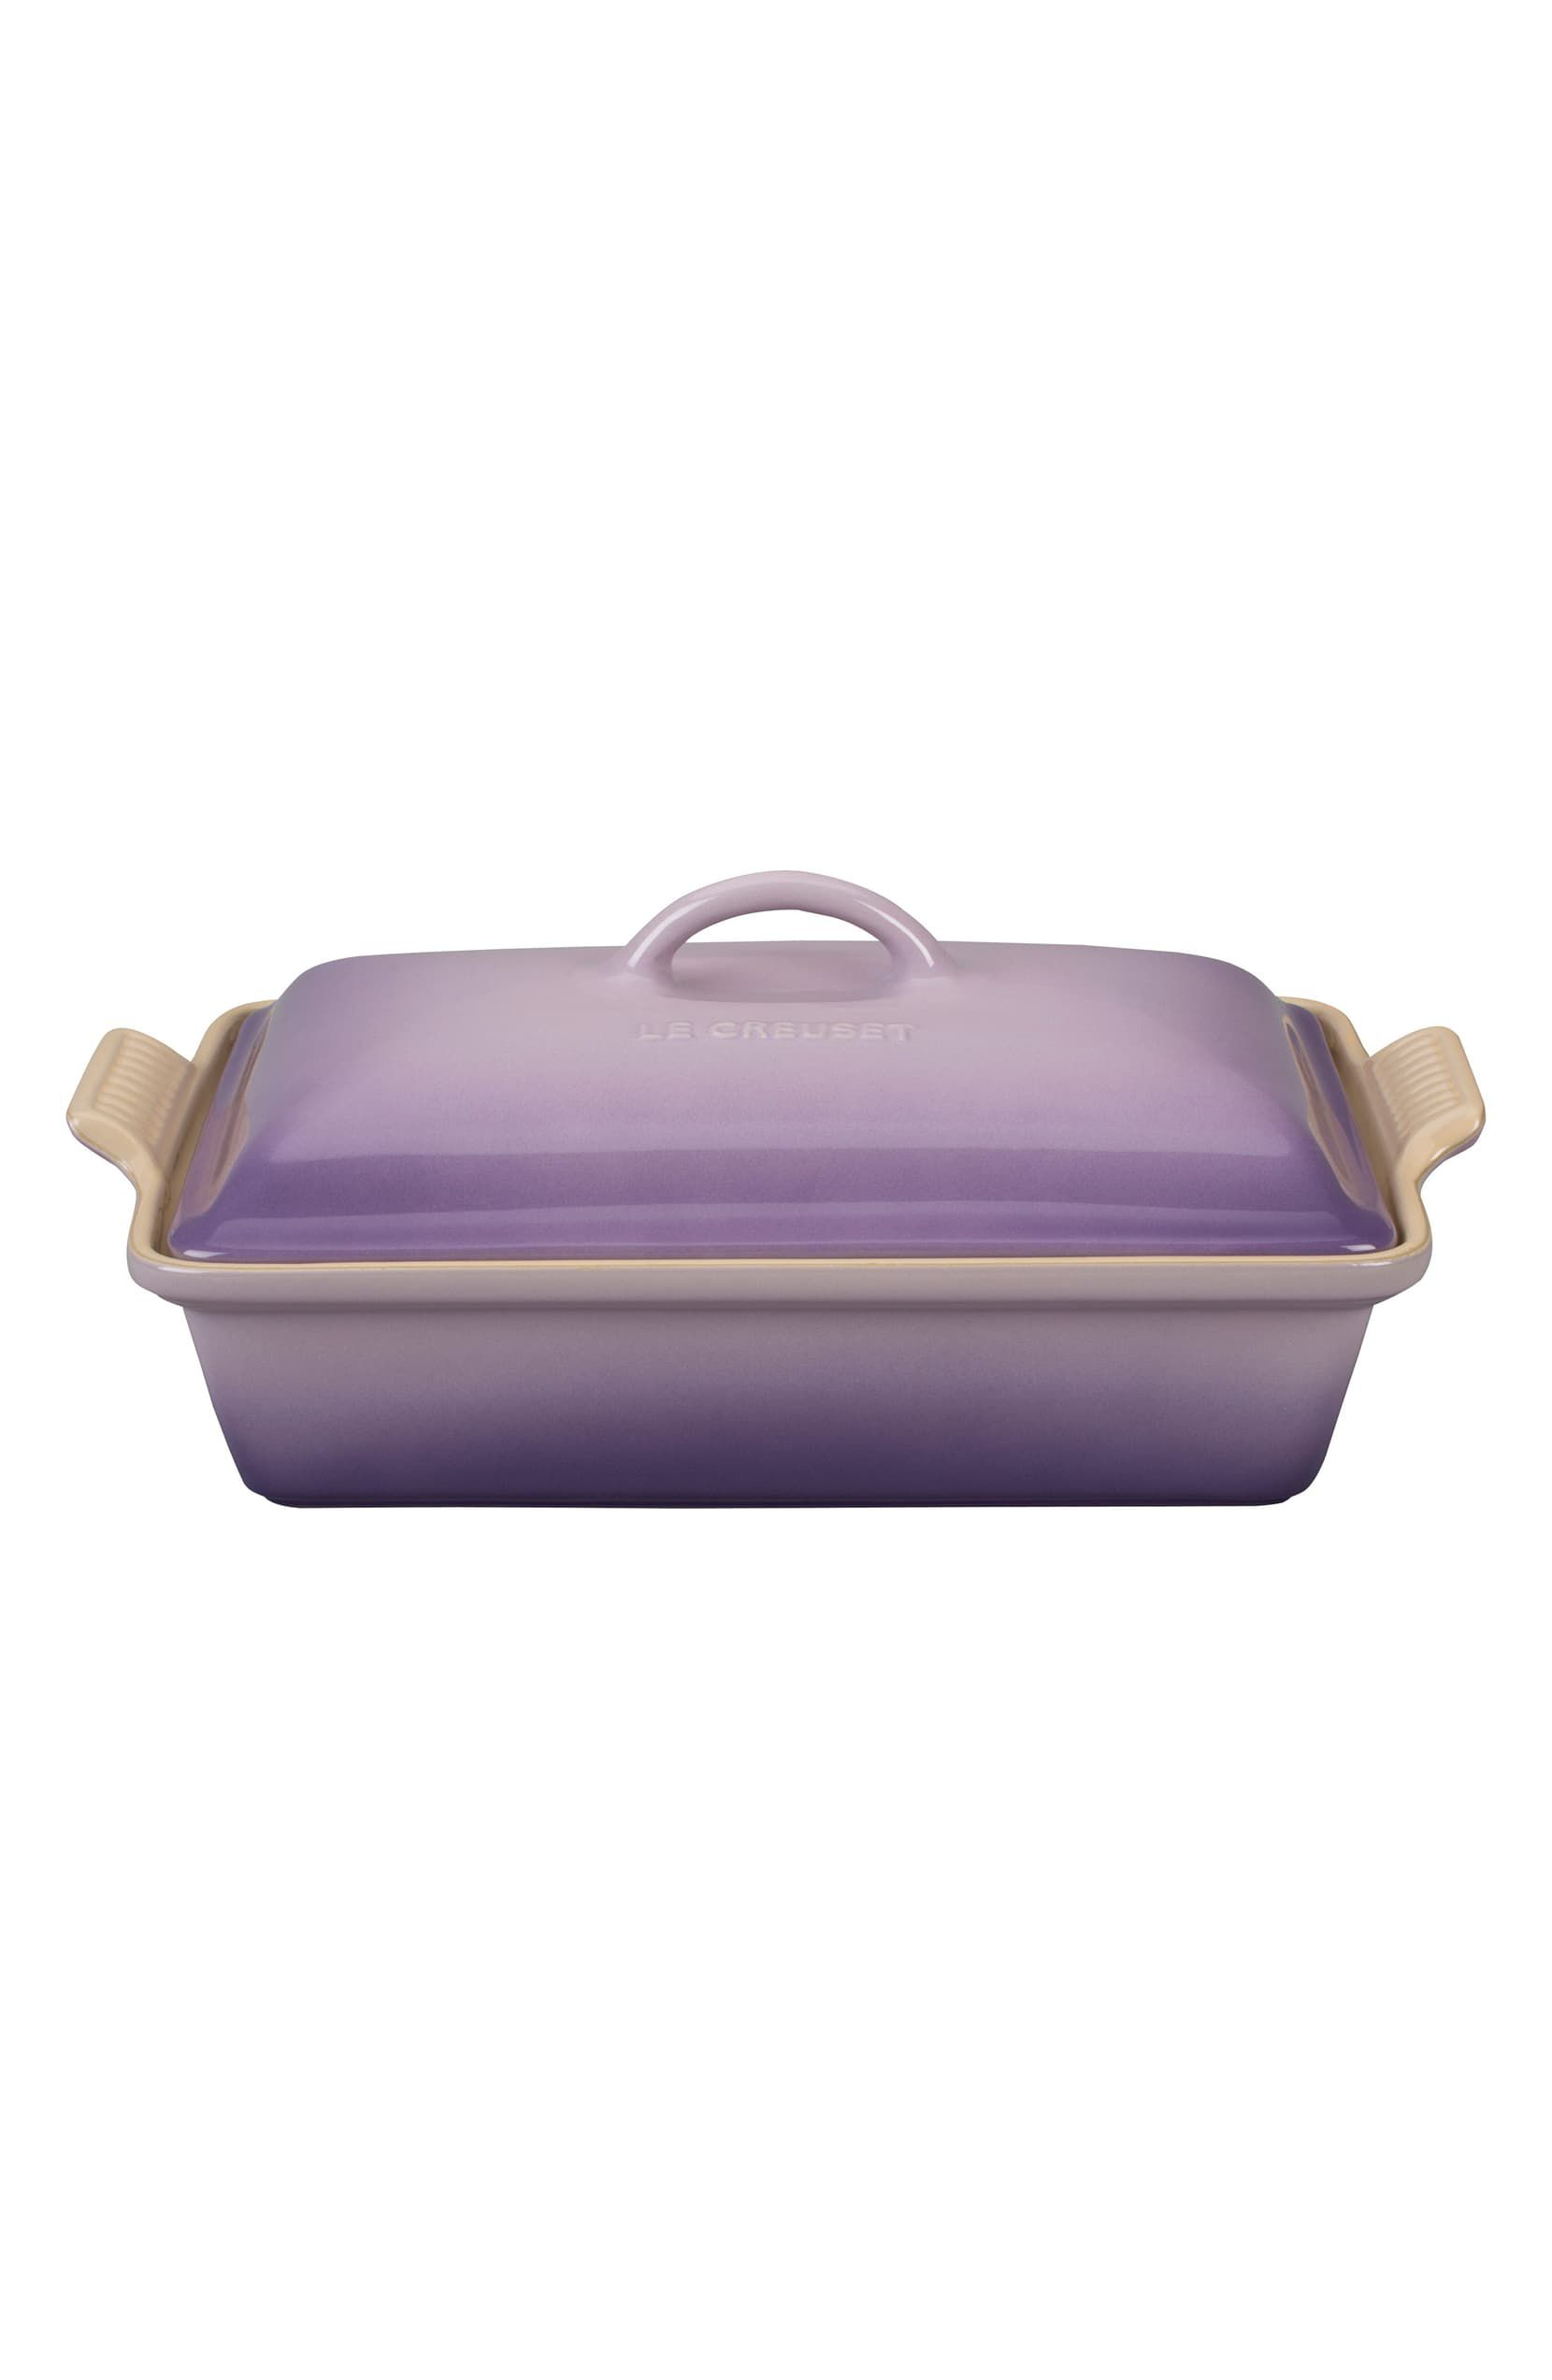 4-Quart Heritage Rectangular Covered Baking Dish